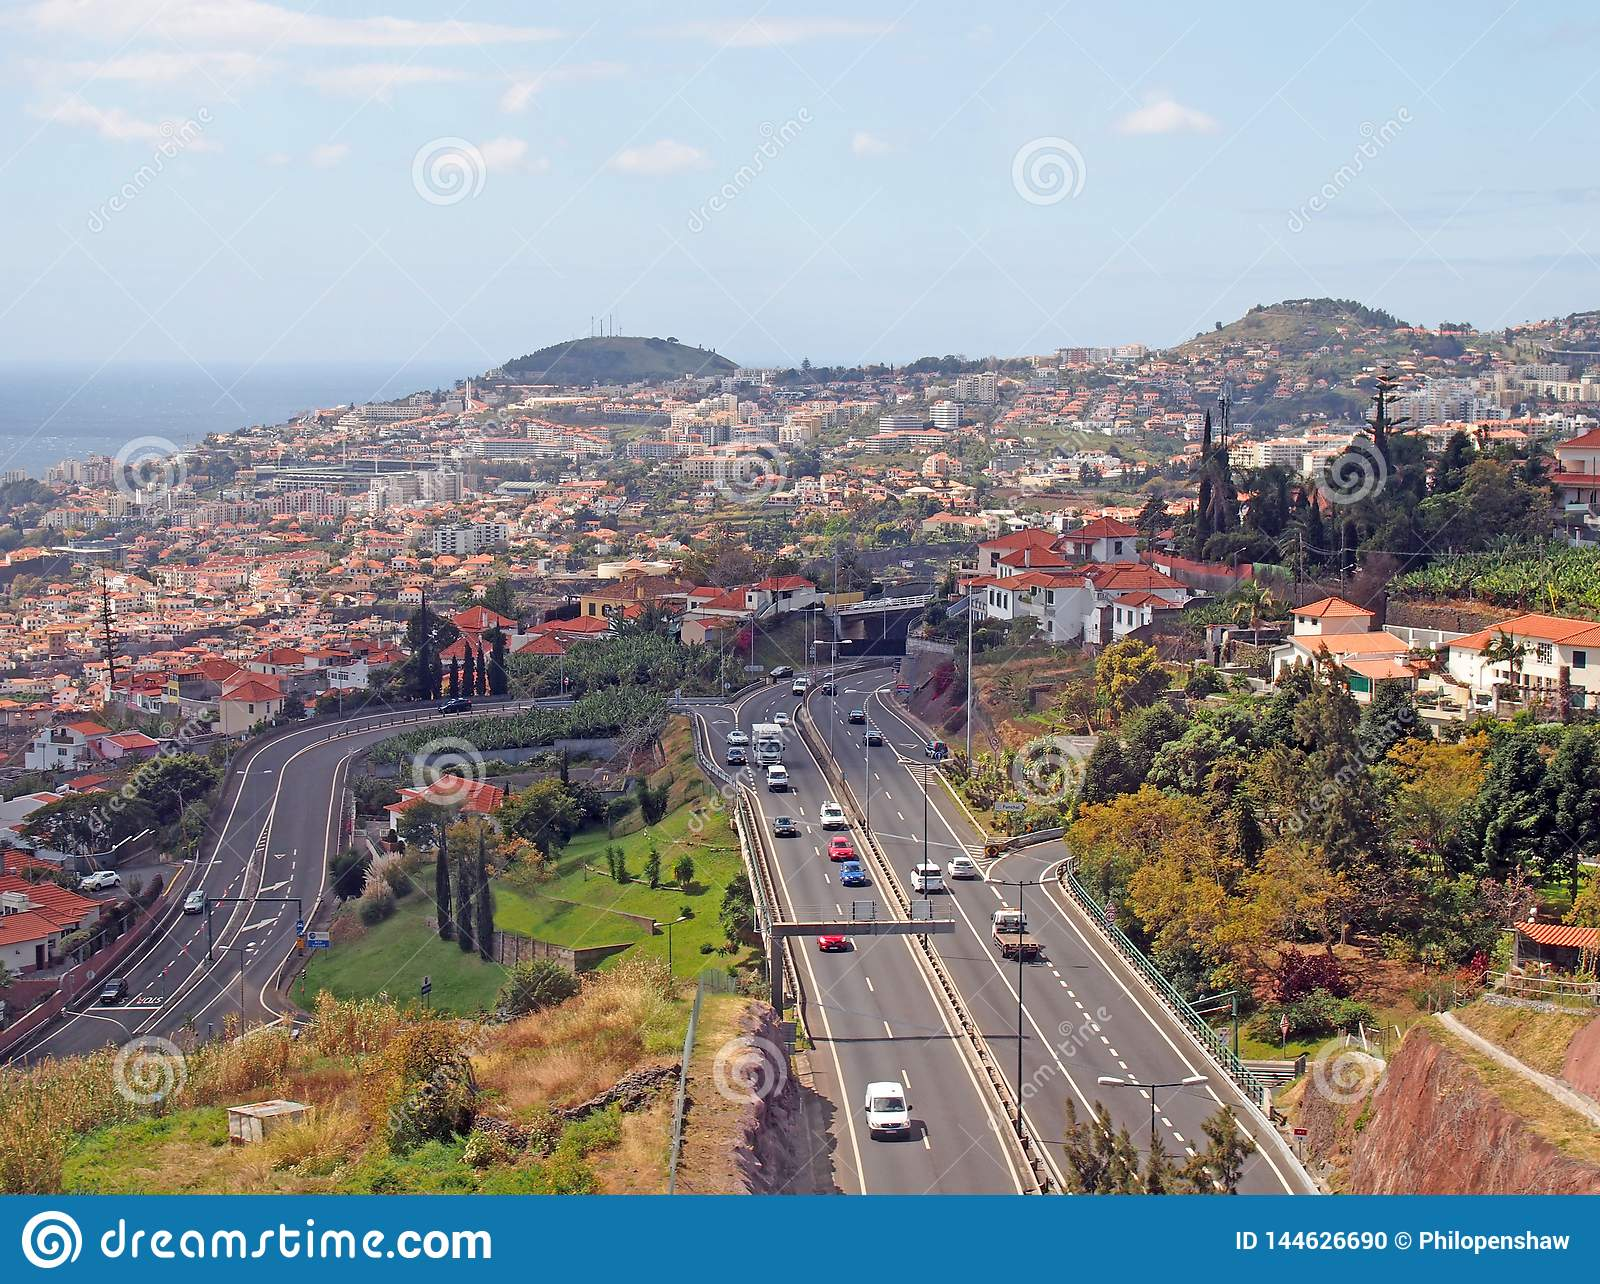 an aerial cityscape view of funchal showing traffic on the main VR1 motorway running into the city with the coast visible in the